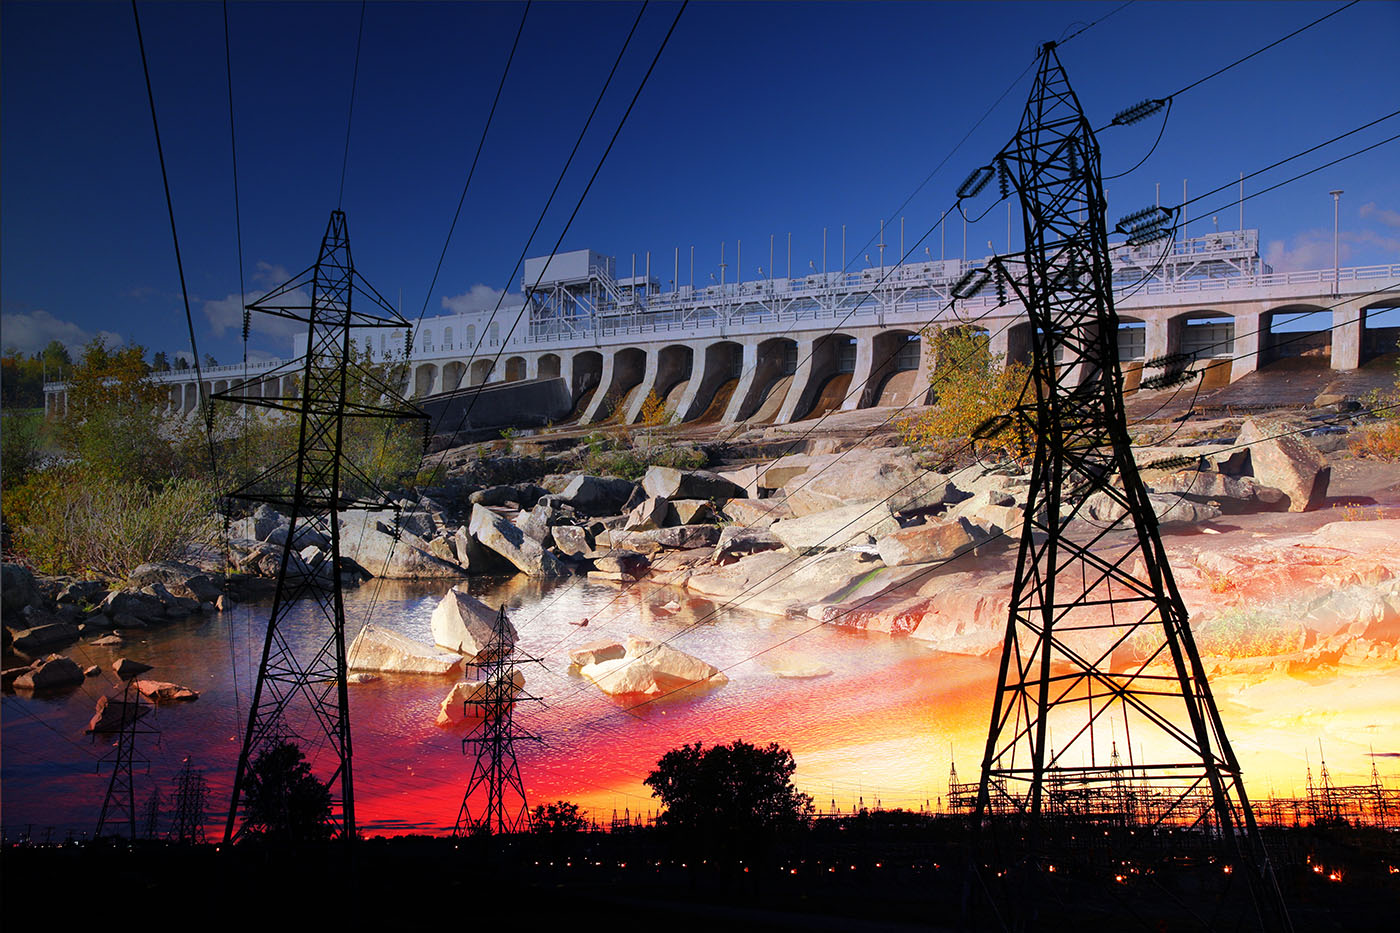 Electric Dam 03 - stock photos and royalty-free images